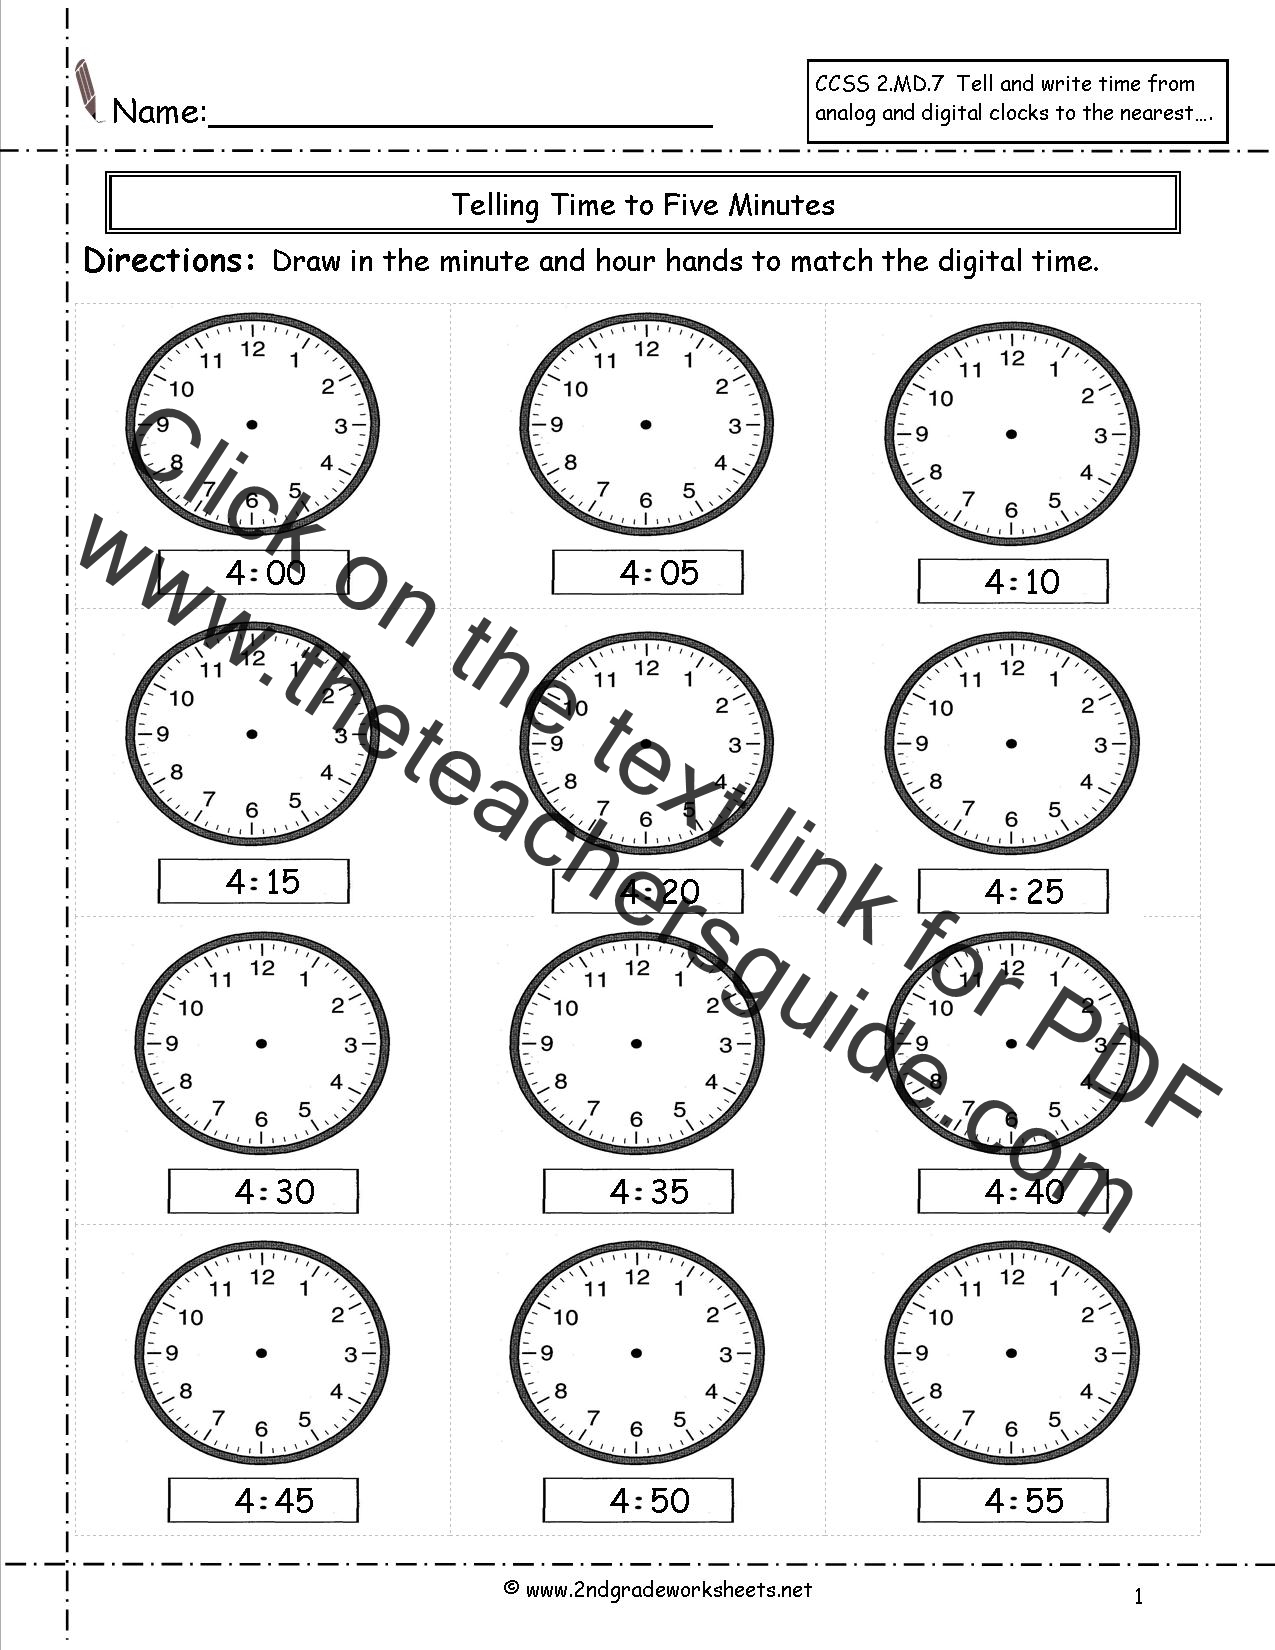 worksheet Am And Pm Worksheets telling and writing time worksheets worksheets